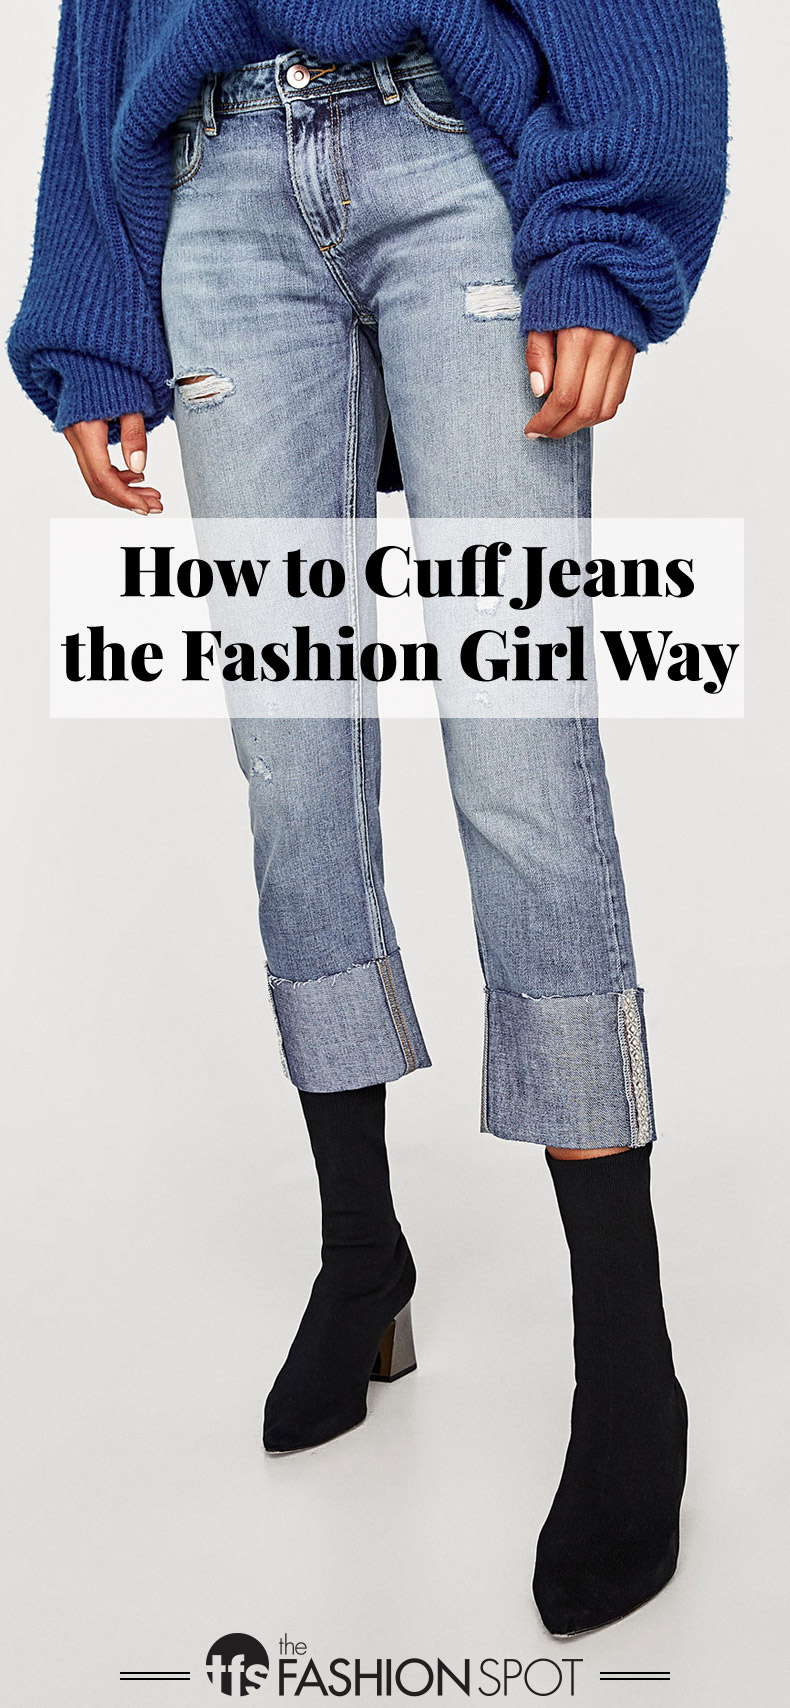 How to Cuff Jeans the Fashion Girl Way